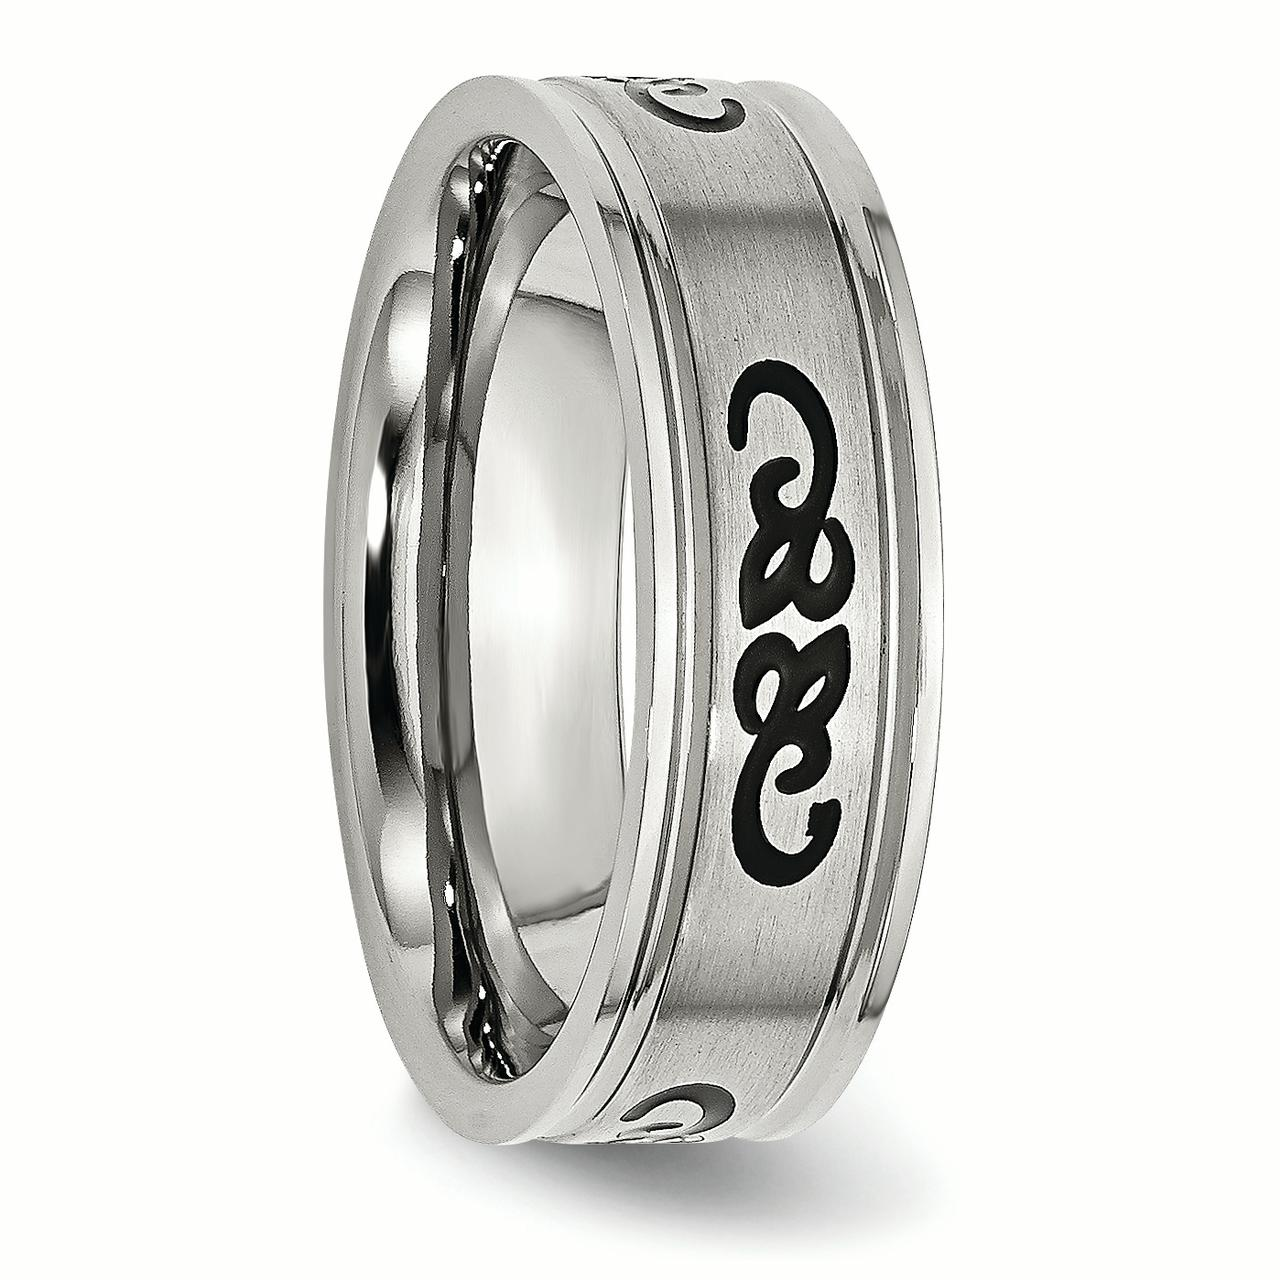 Stainless Steel Black Rubber 7mm Ridged Edge Brushed Wedding Ring Band Size 11.50 Designed Fashion Jewelry Gifts For Women For Her - image 4 de 6